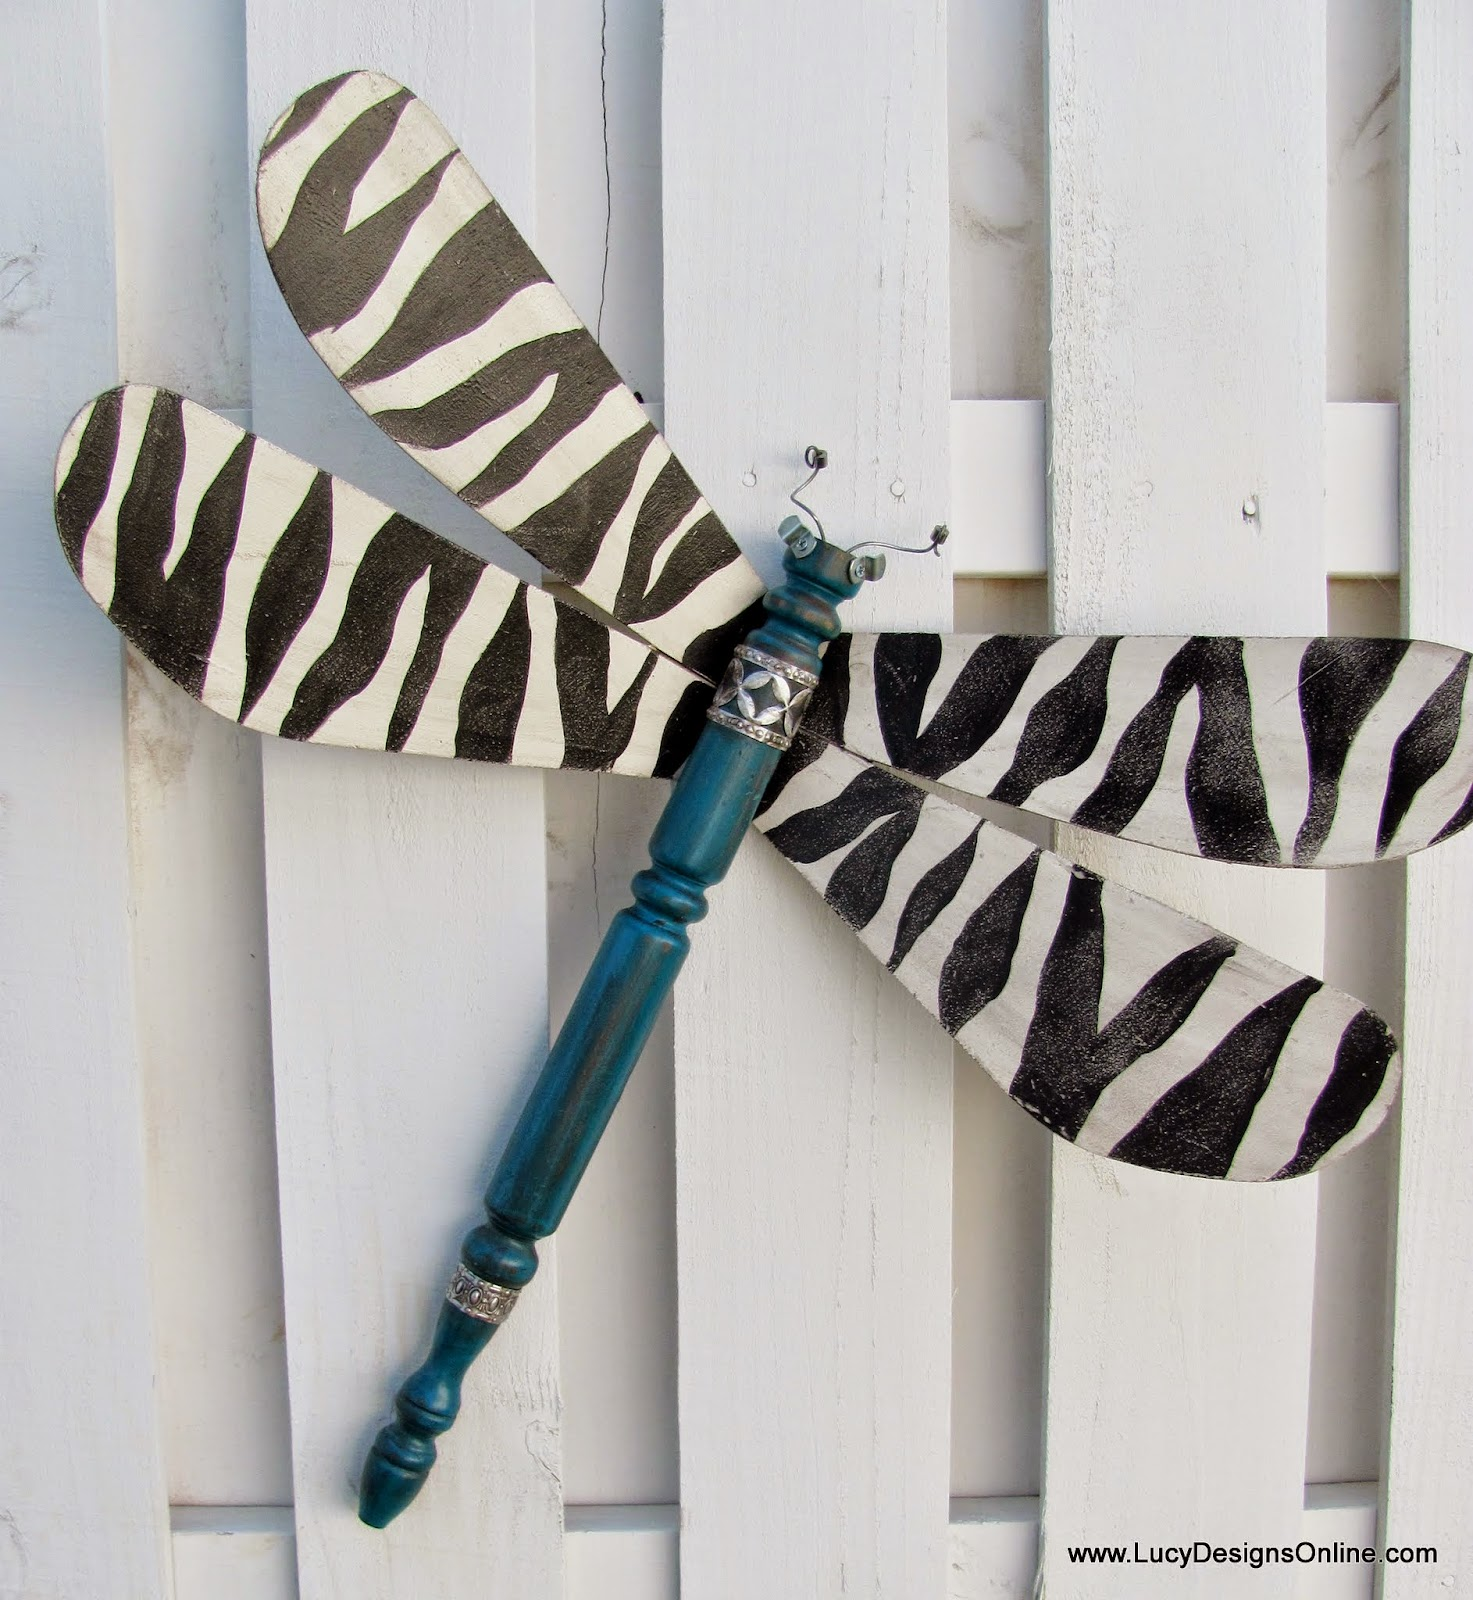 spindle zebra dragonfly recycled art